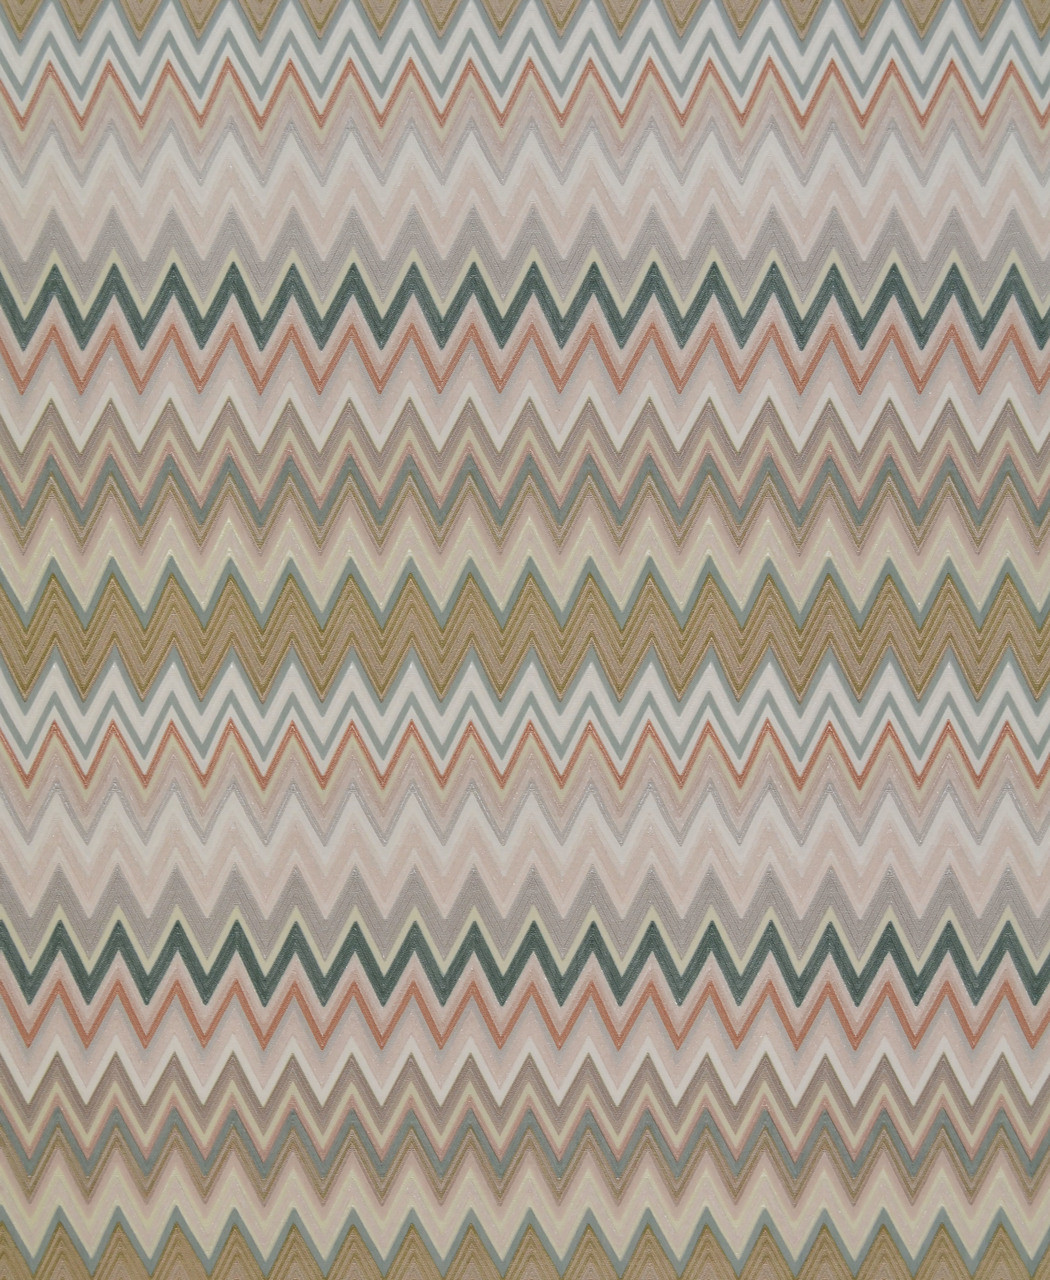 d9778ea37f0f MI10065 Missoni Home Zig Zag Multicolore Wallpaper by york. Image 1.  Loading zoom